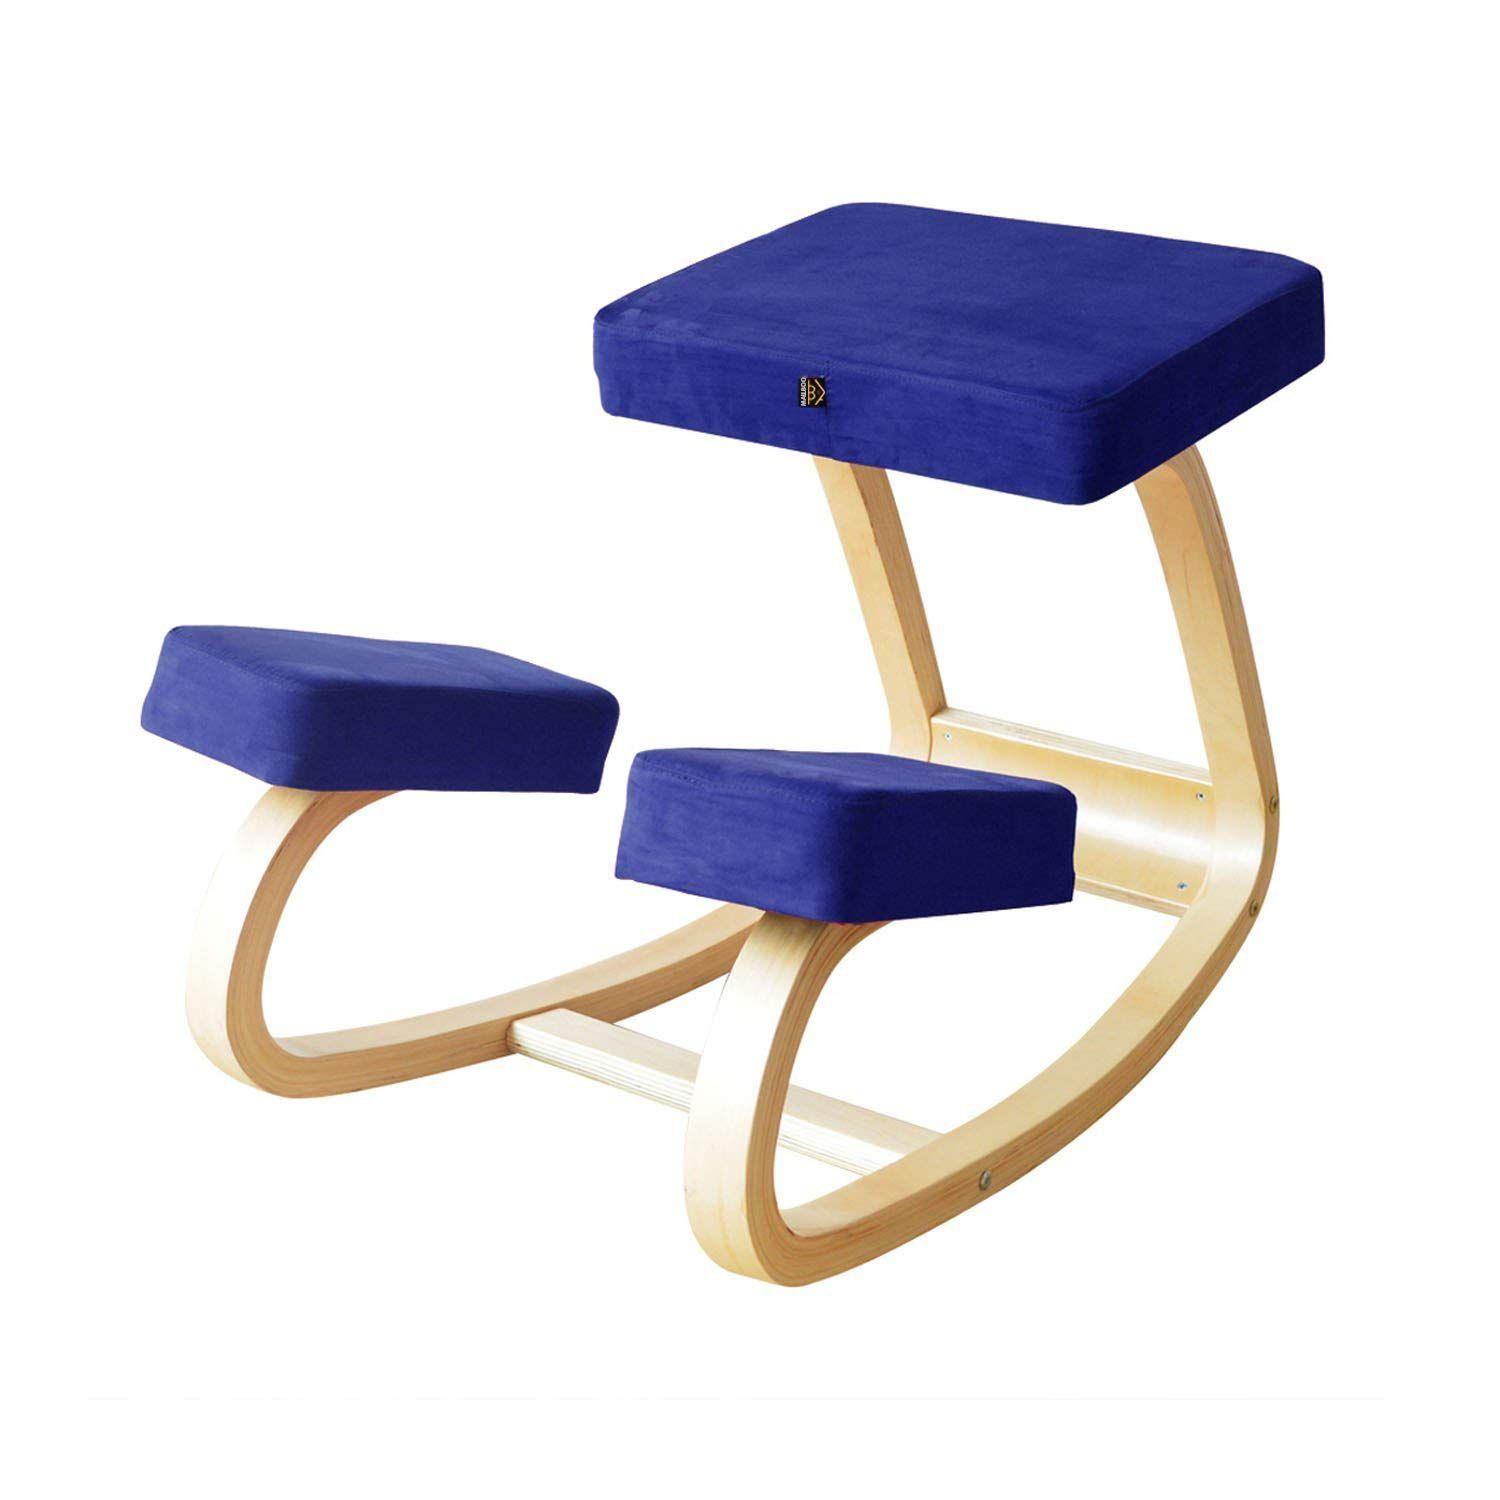 Tremendous The 8 Best Kneeling Chairs Of 2019 Pdpeps Interior Chair Design Pdpepsorg